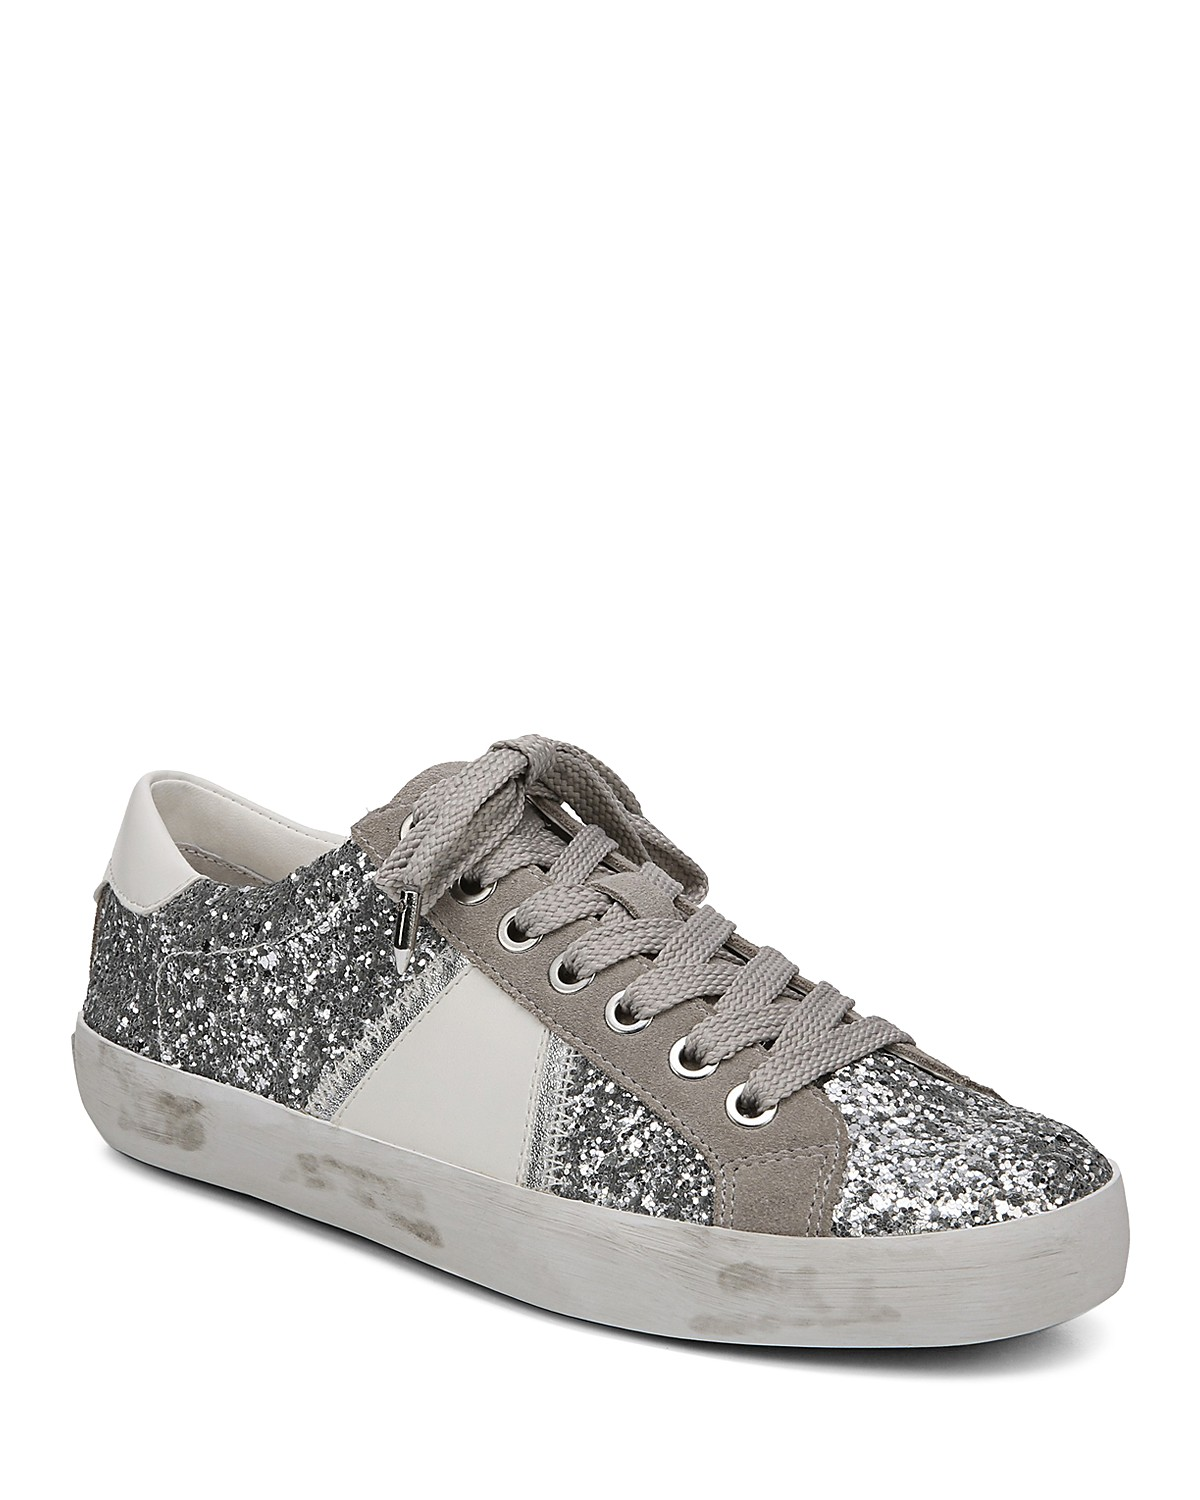 Sam Edelman Baylee Women's Suede Low Top Lace Up Sneakers 19uaXEtq